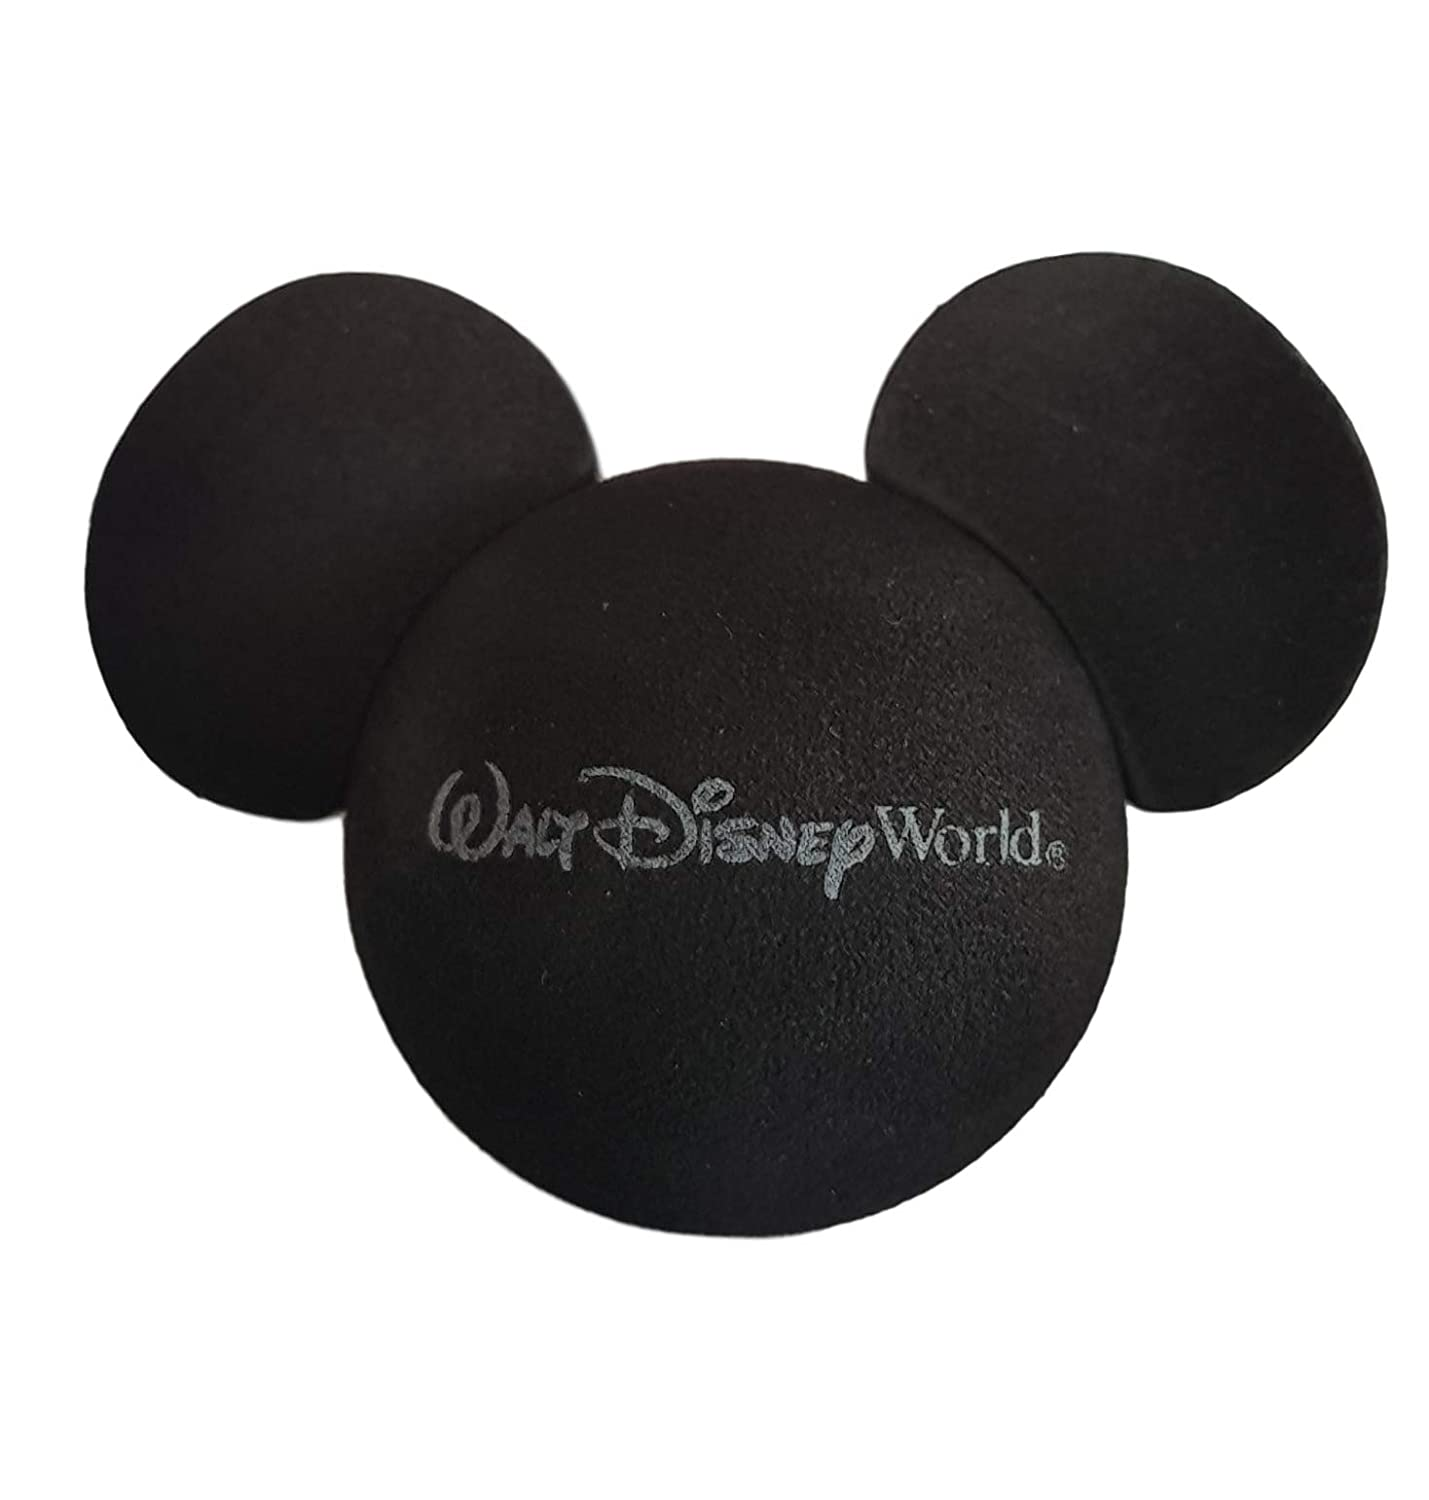 Access-All-Areas Mickey Mouse Black Aerial Ball Topper Car Locator Finder Mothers Day Girl Birthday Gift Disney Park World